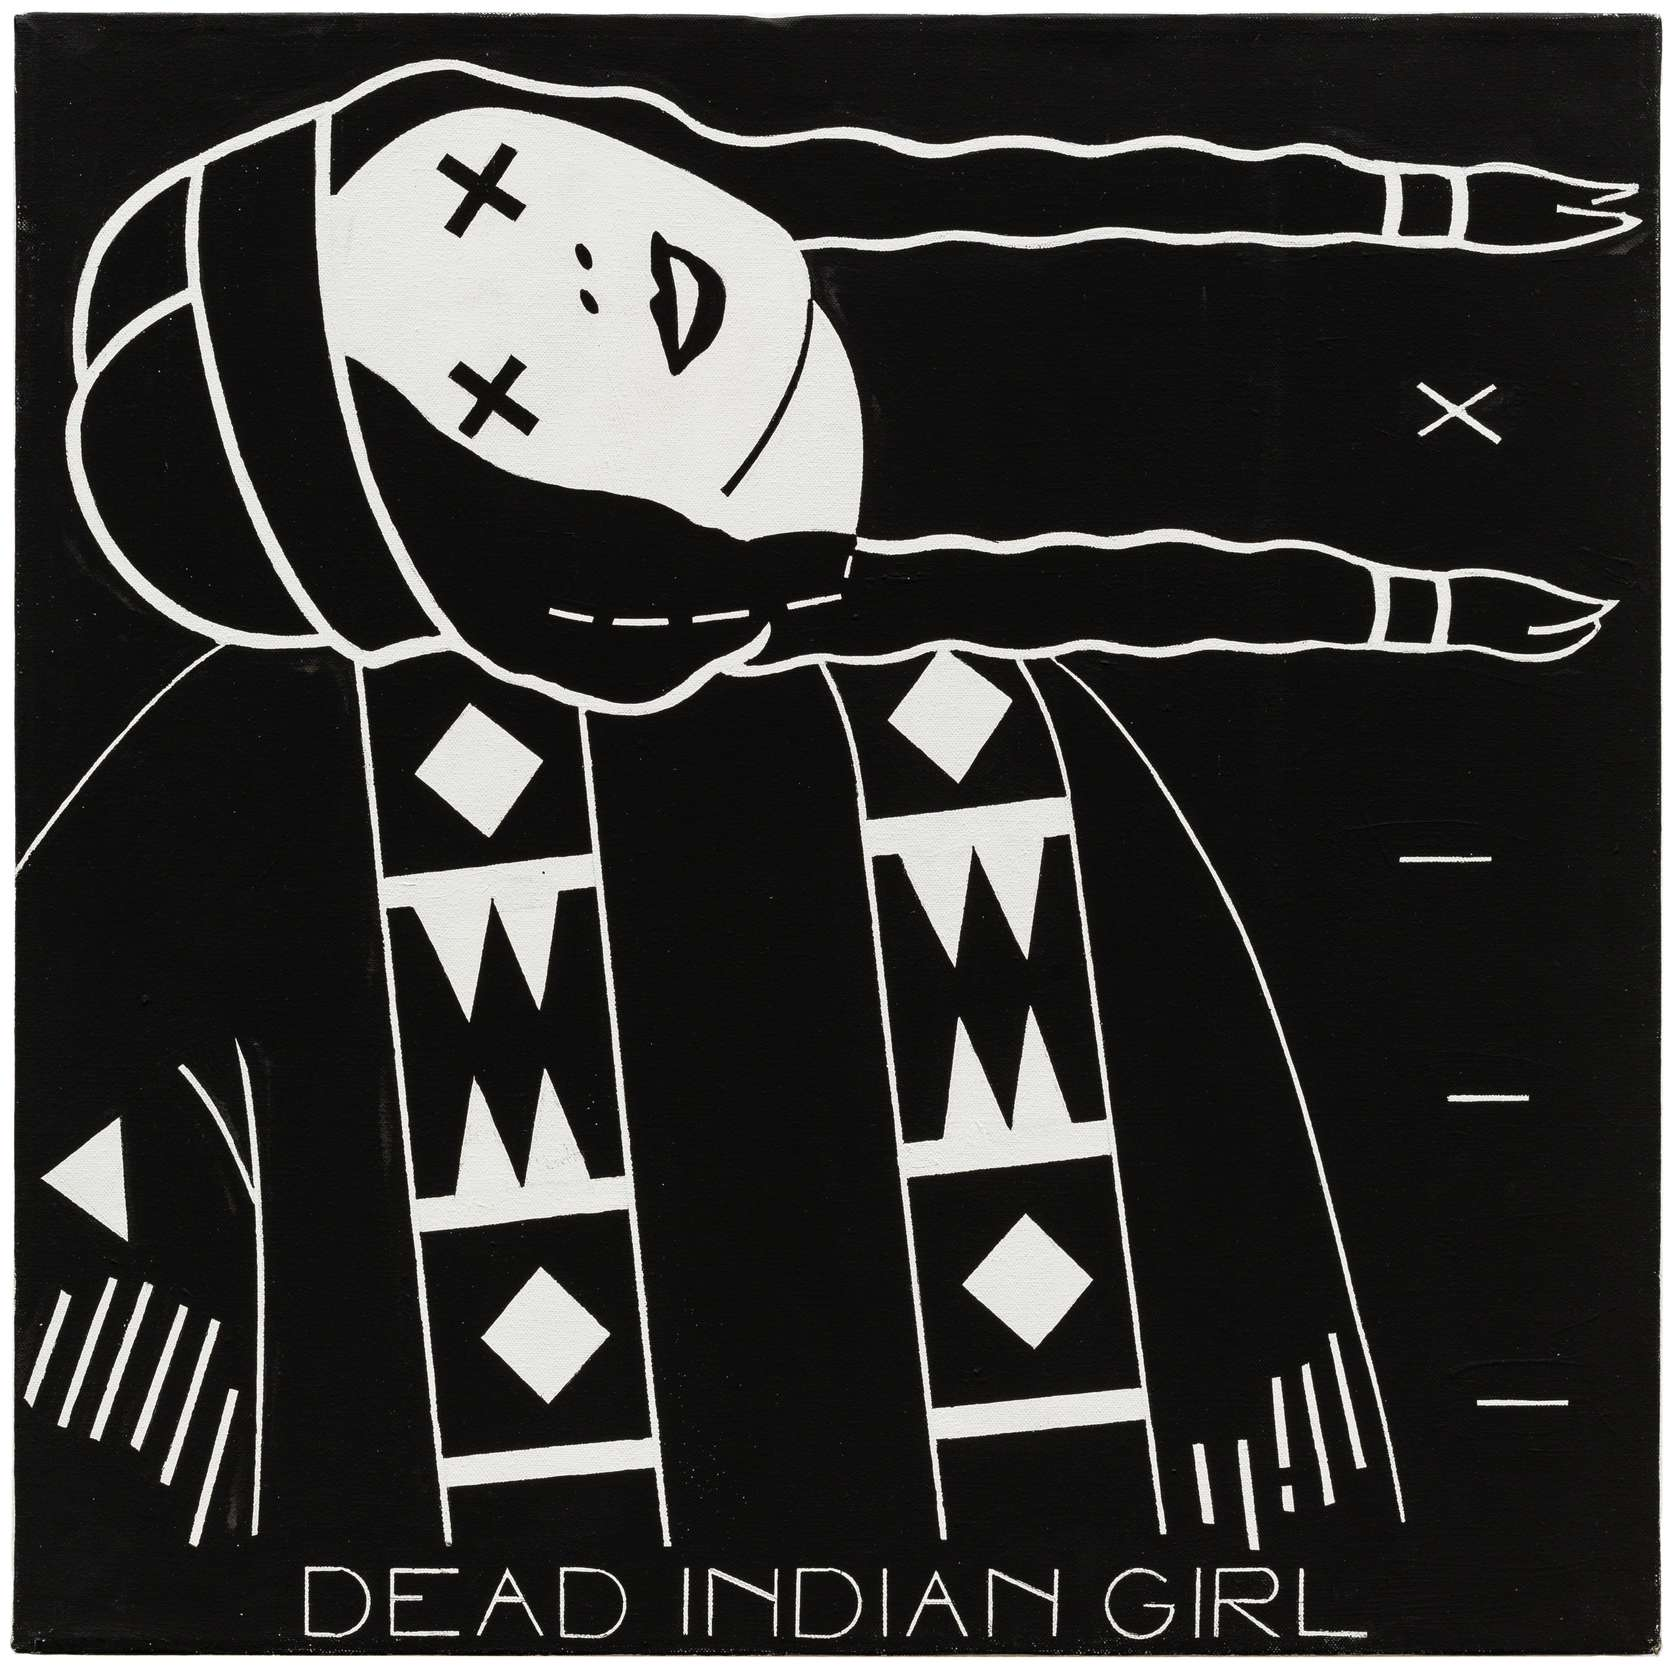 Steve Gianakos, Dead Indian girl, 1982 Acrylique sur toile61.5 x 61 cm / 24 2/8 x 24  inches